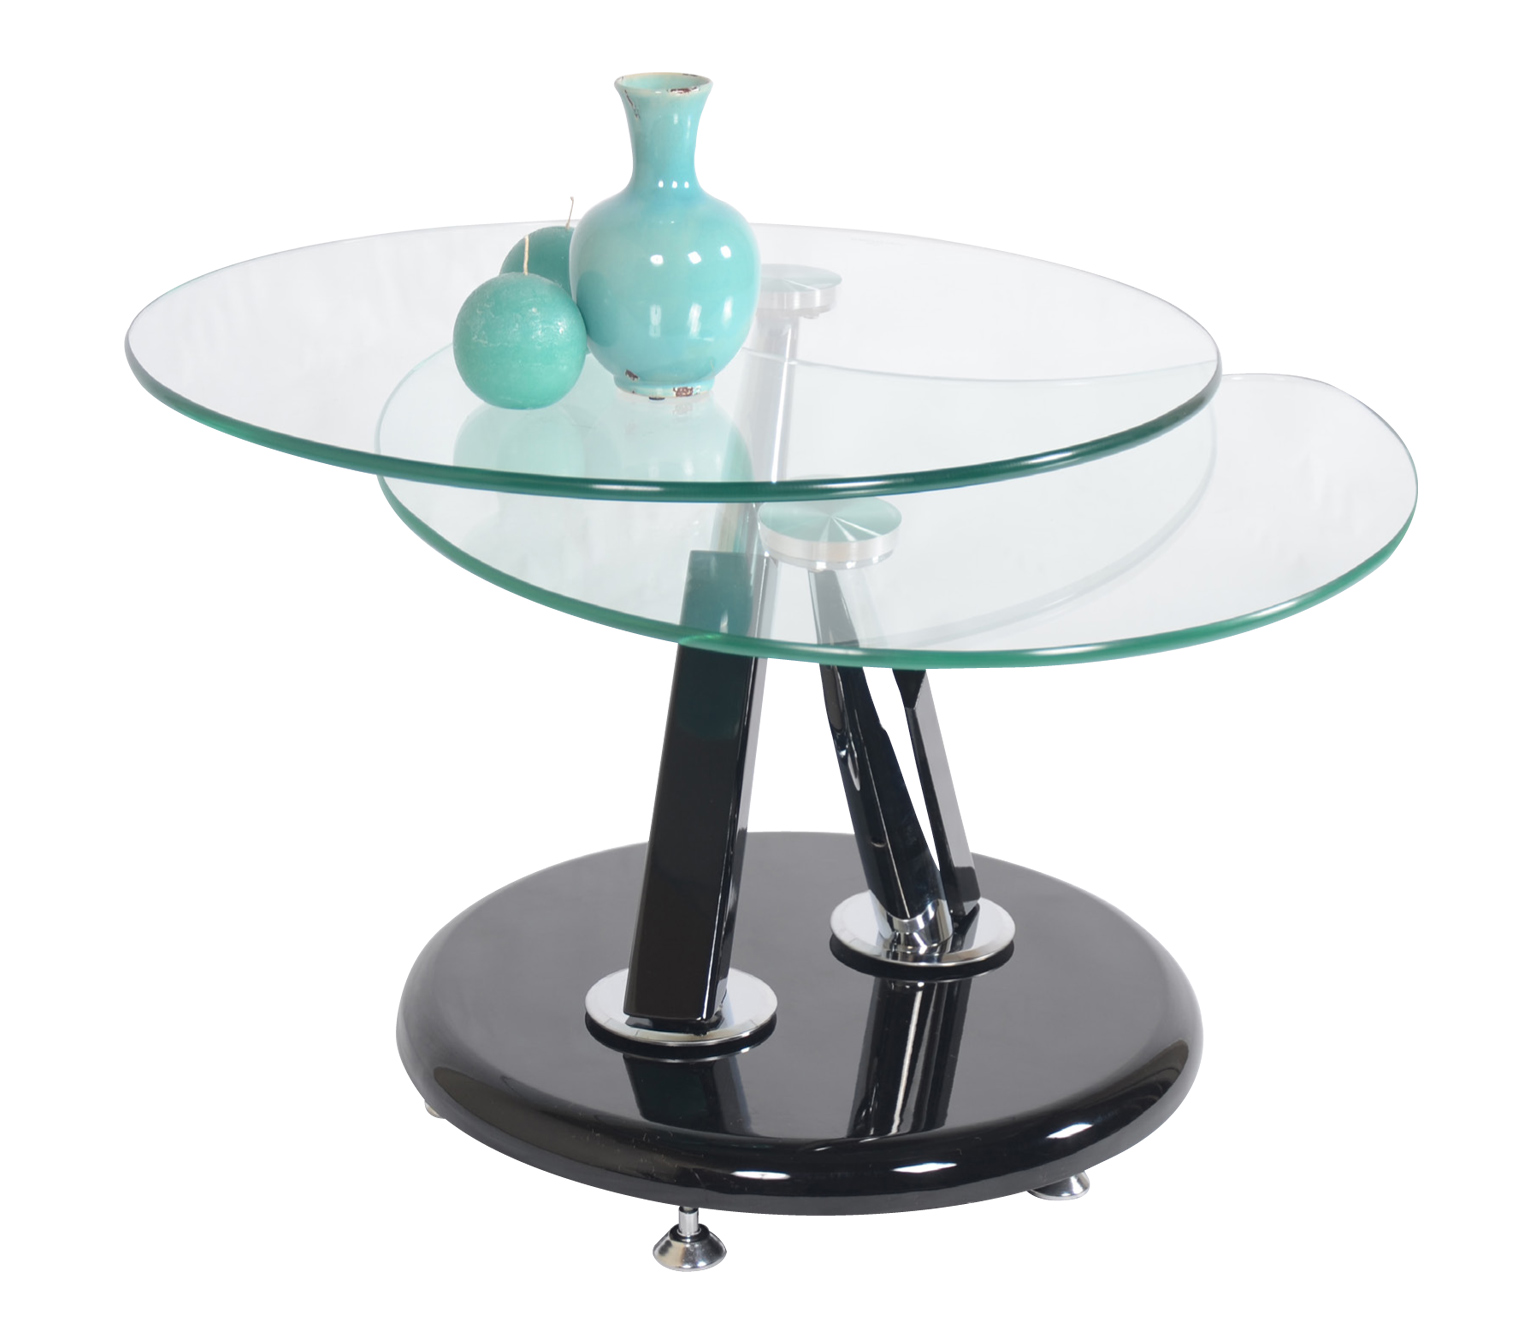 Jupiter glass swivel coffee table swivel coffee table modern coffee table Coffee tables glass